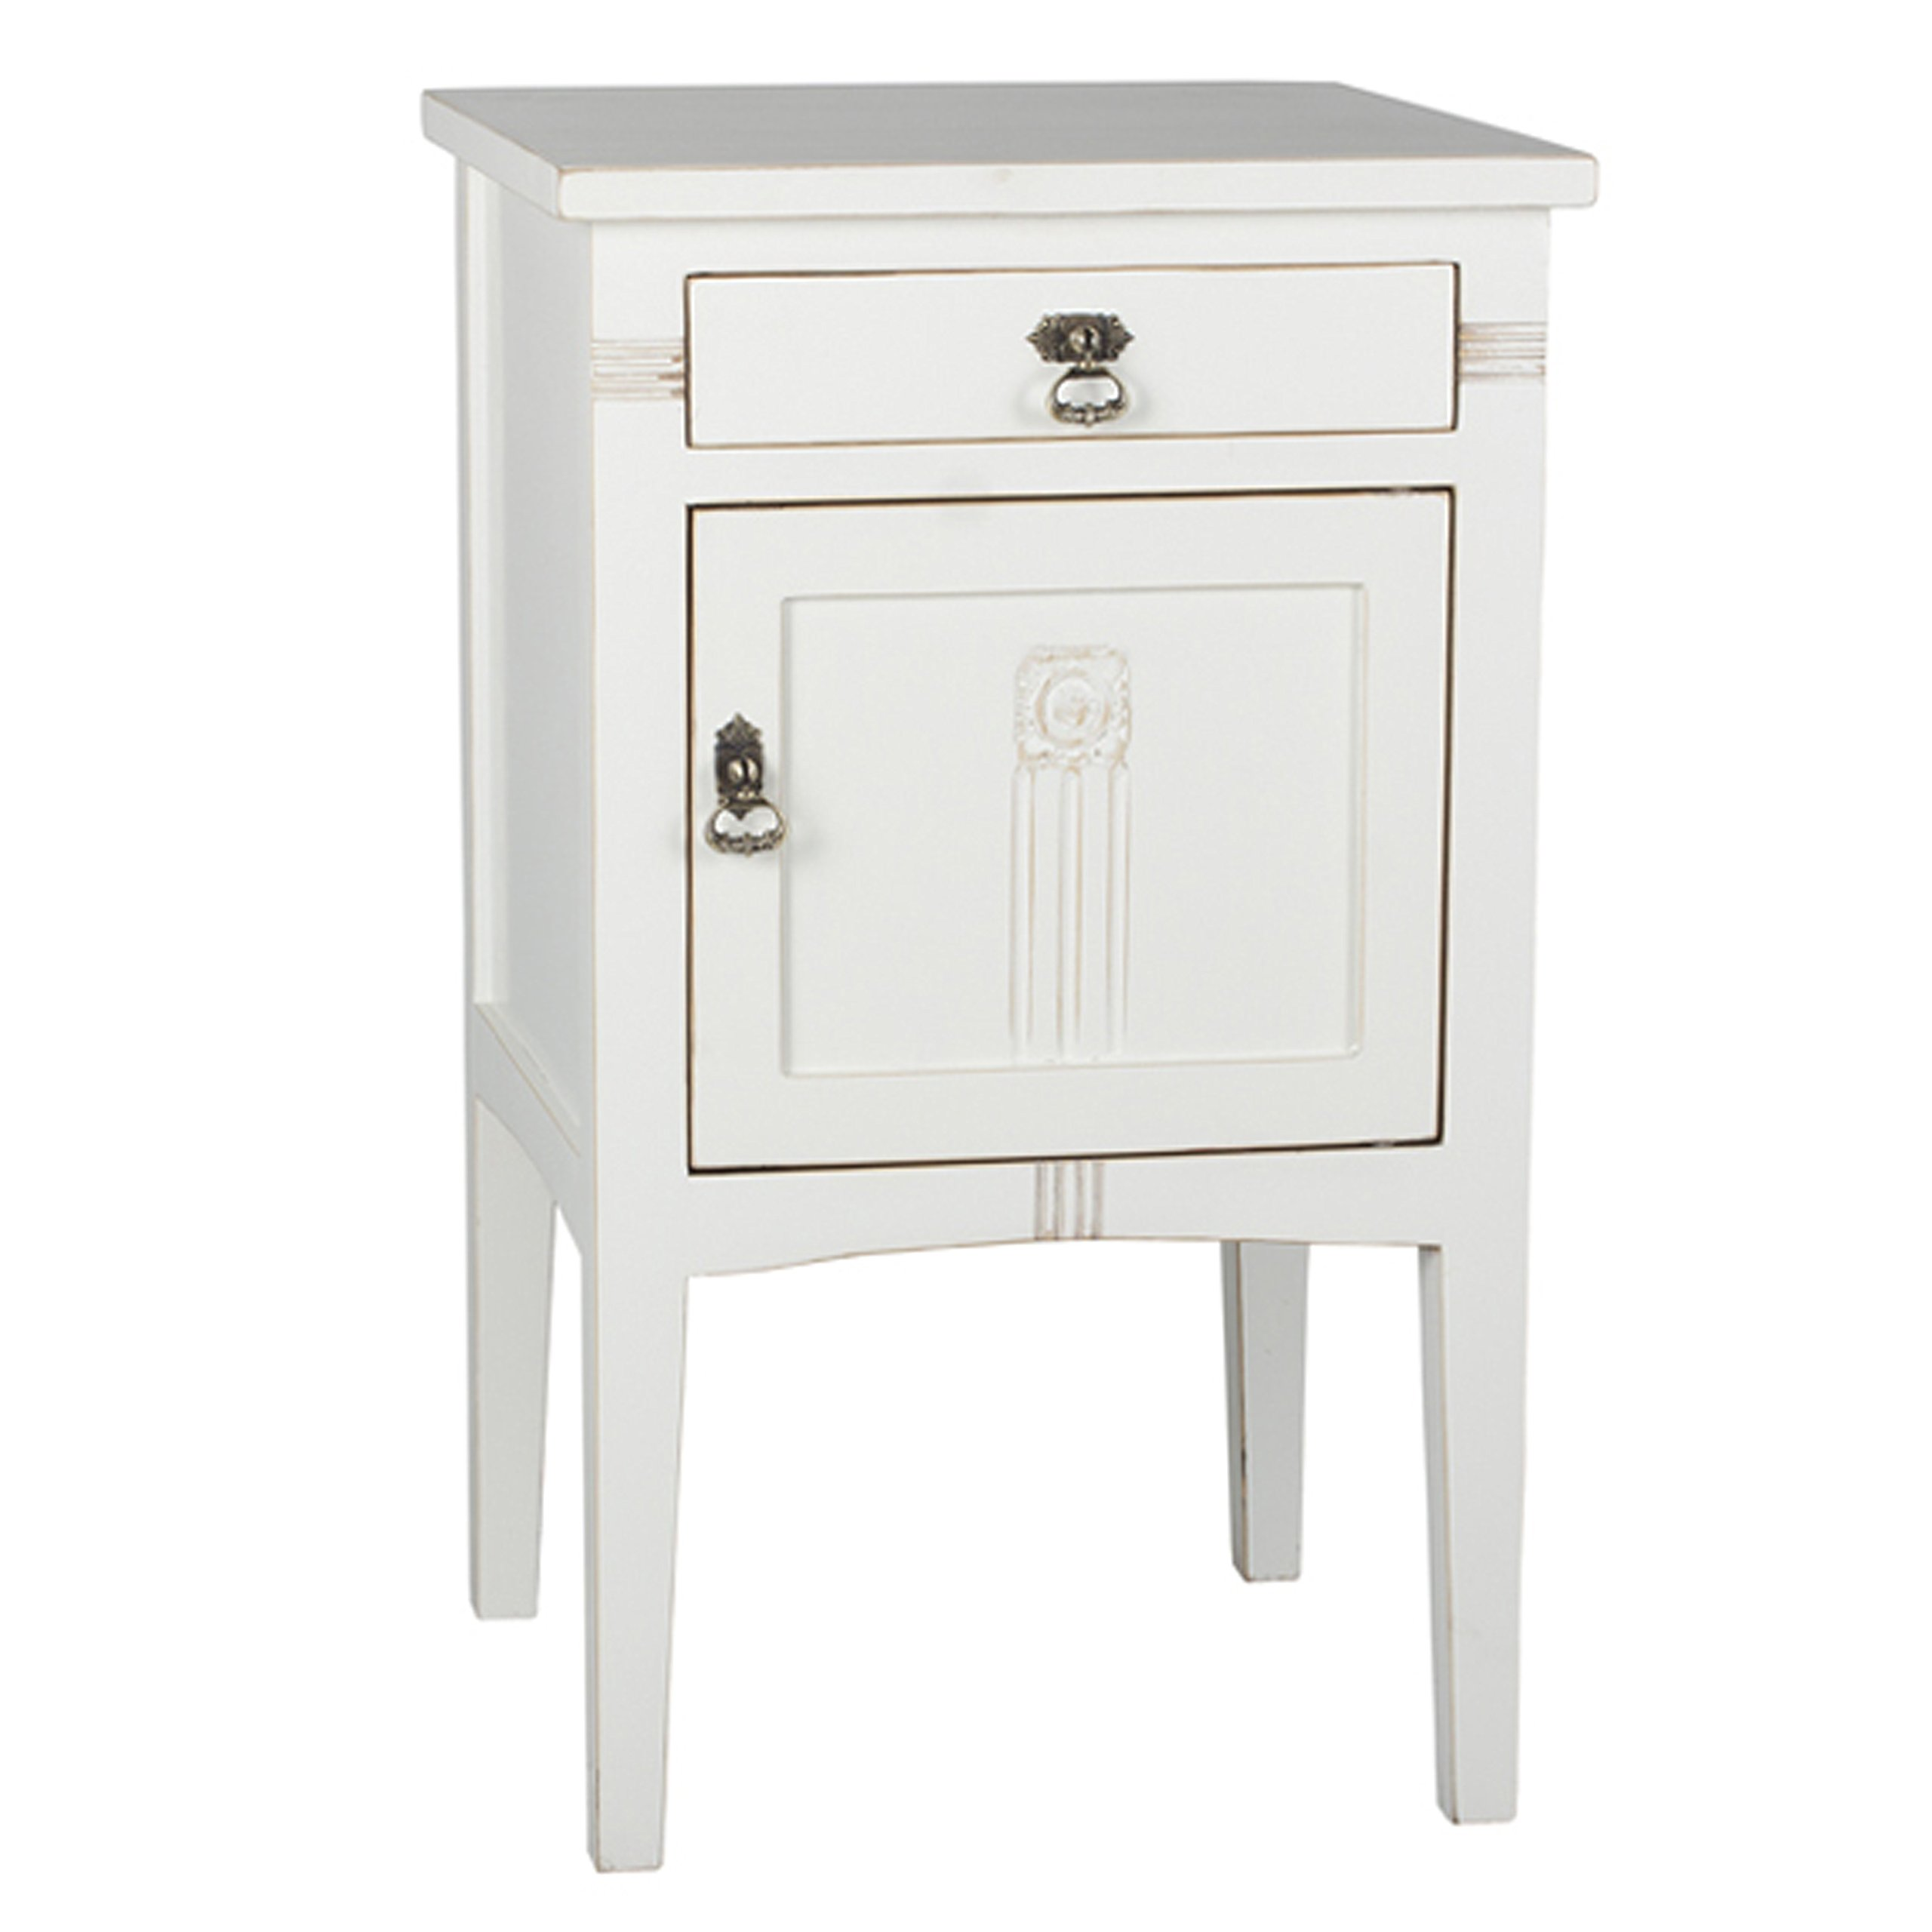 Antique Revival Saybrook Nightstand, White